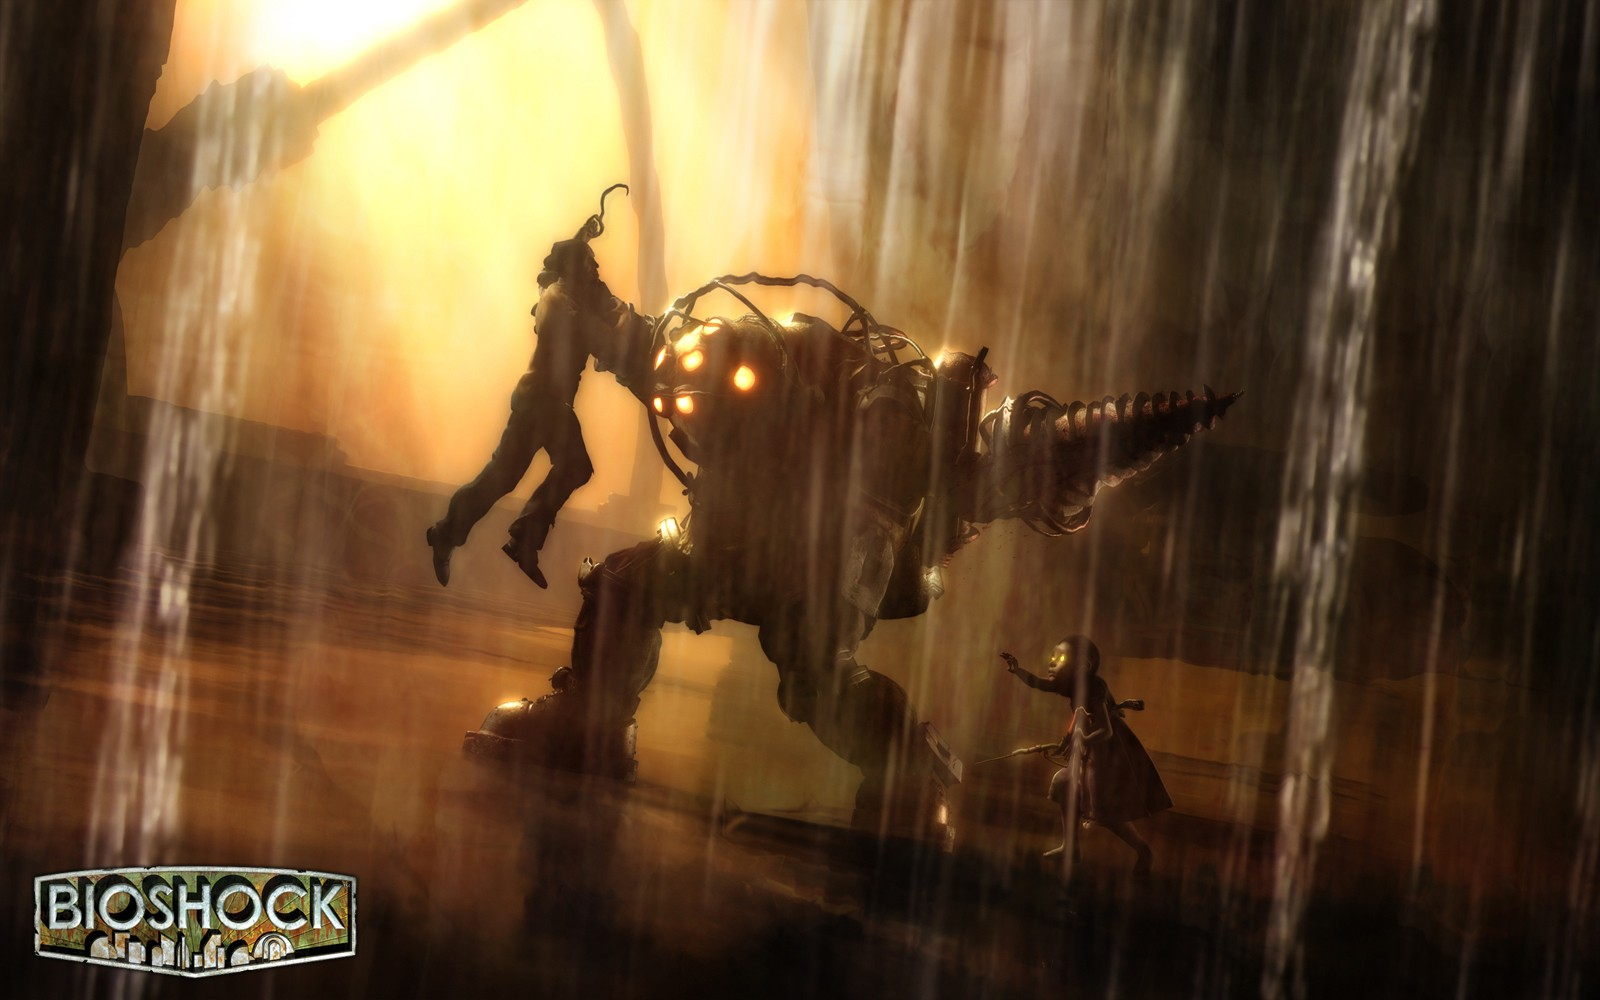 Category : Game Wallpapers » BioShock, Video Games, Mech, Big Daddy ...